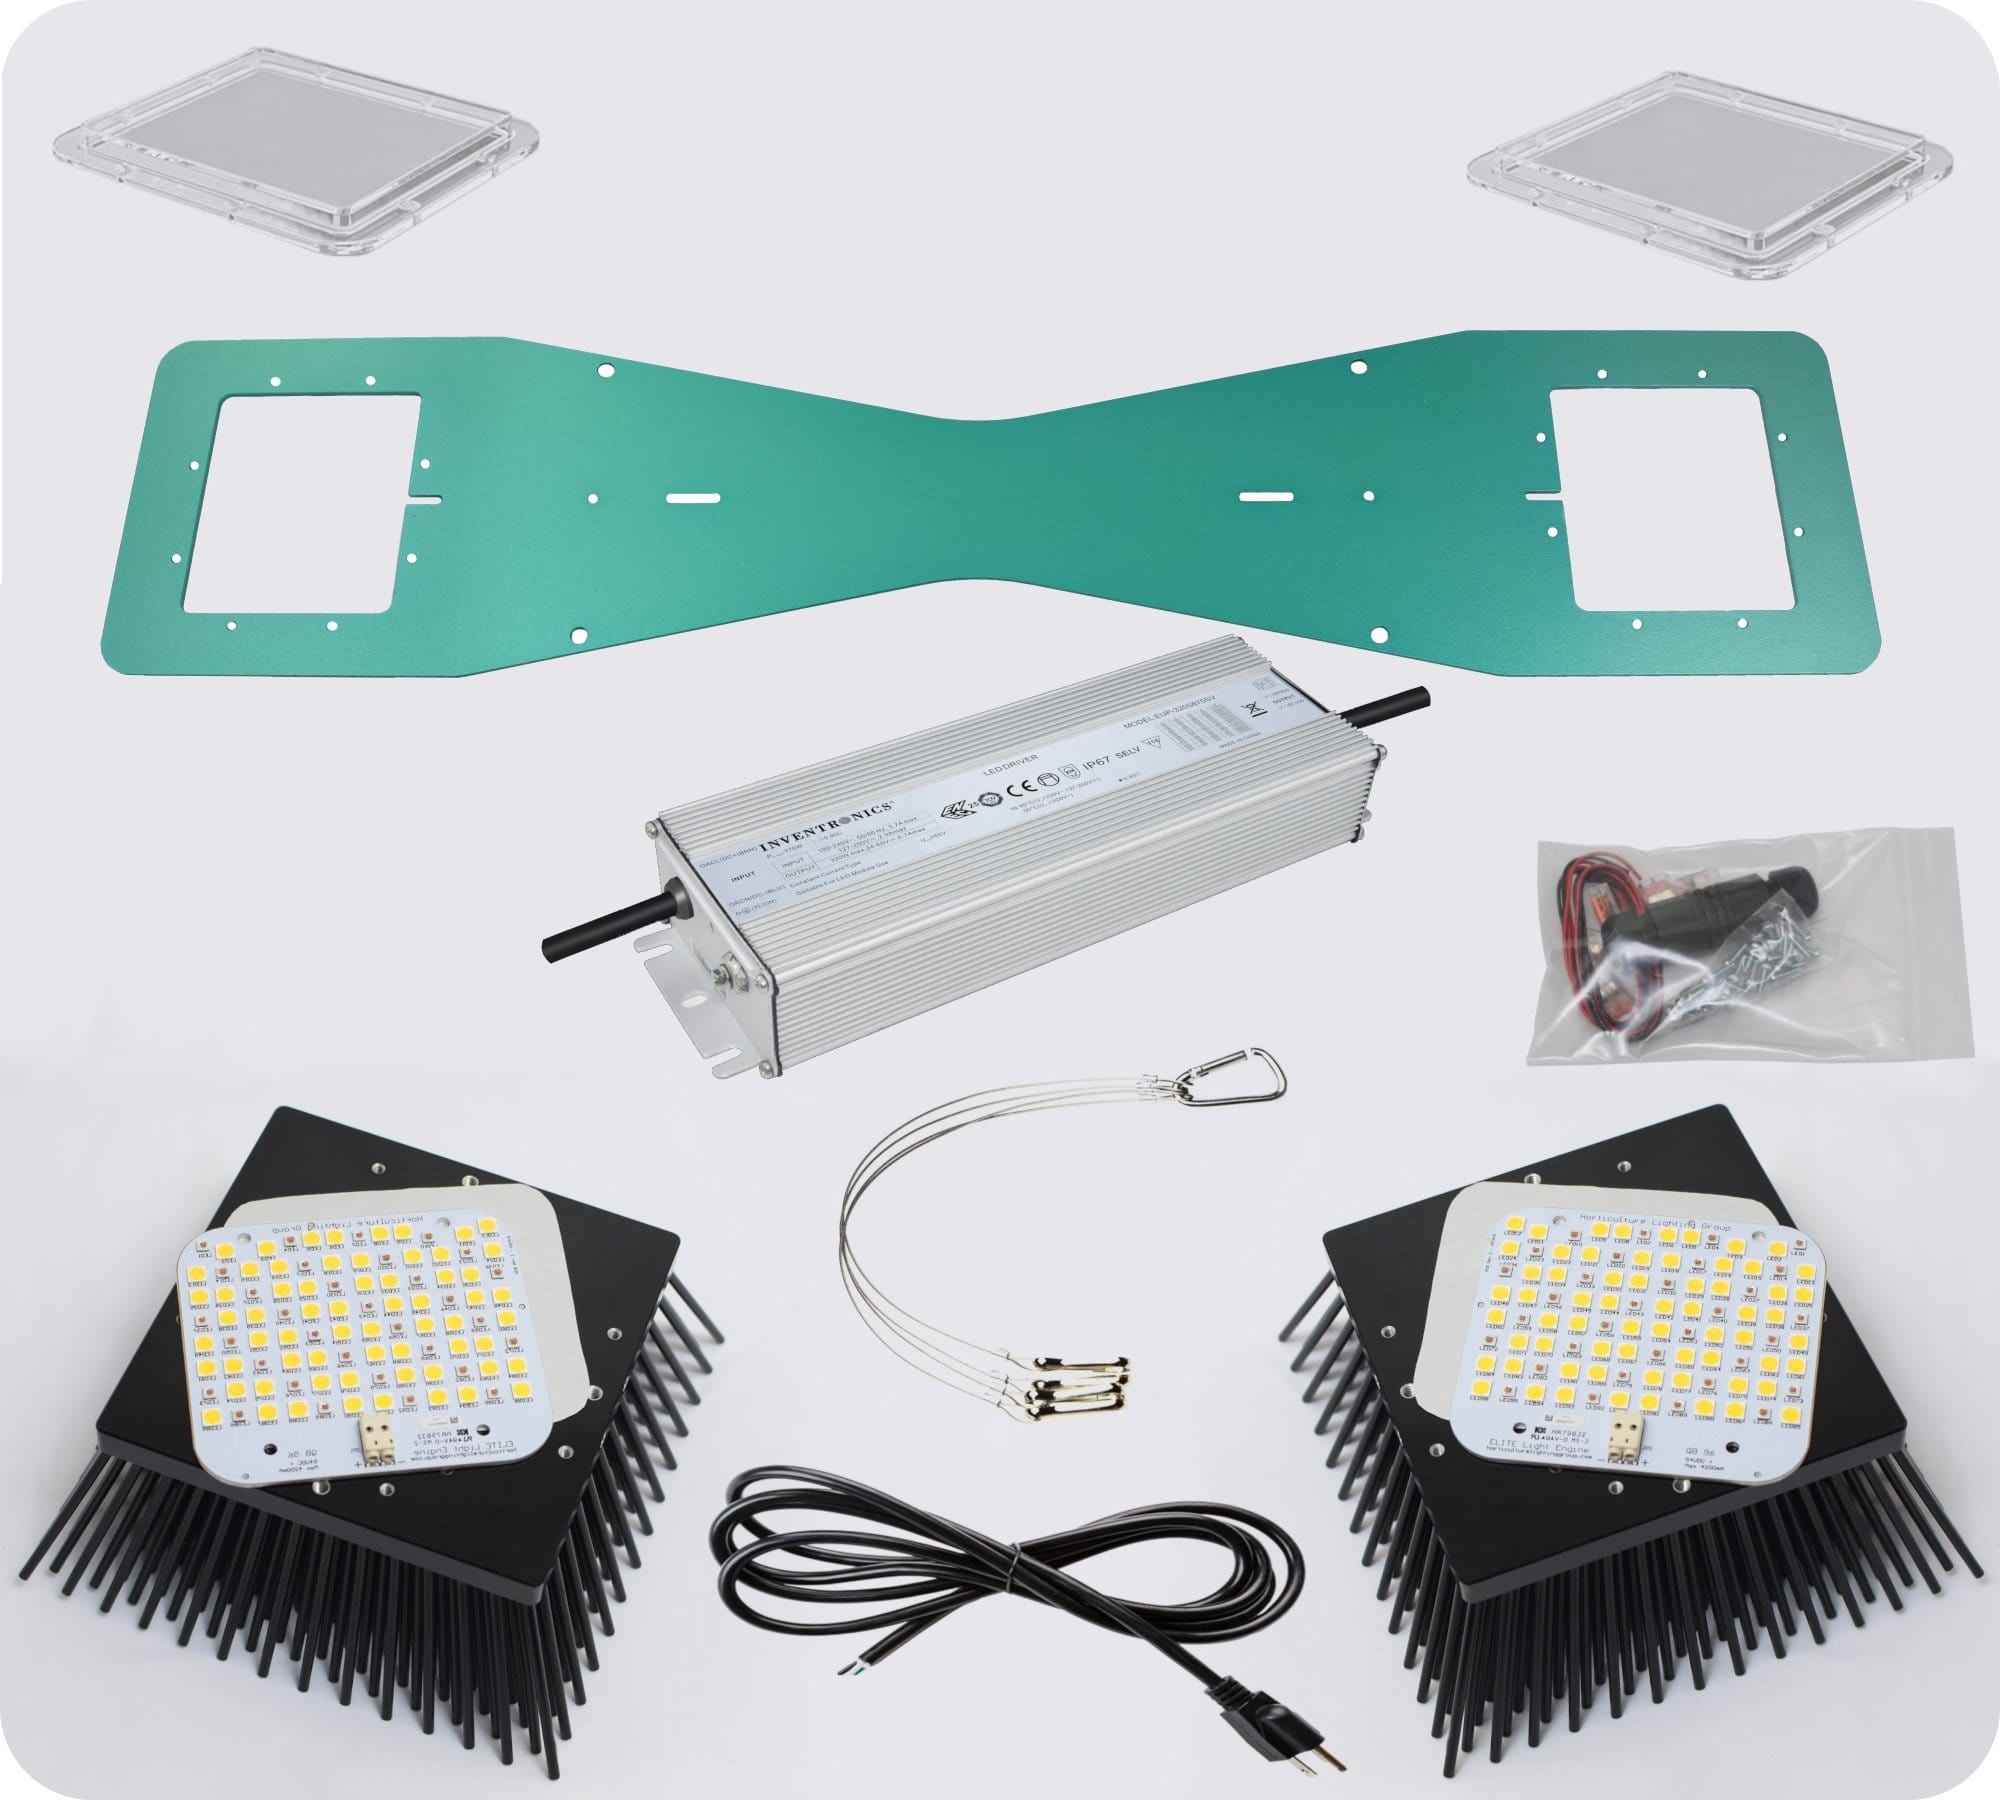 Horticulture Lighting Group Premium LED Grow Lights for Agriculture